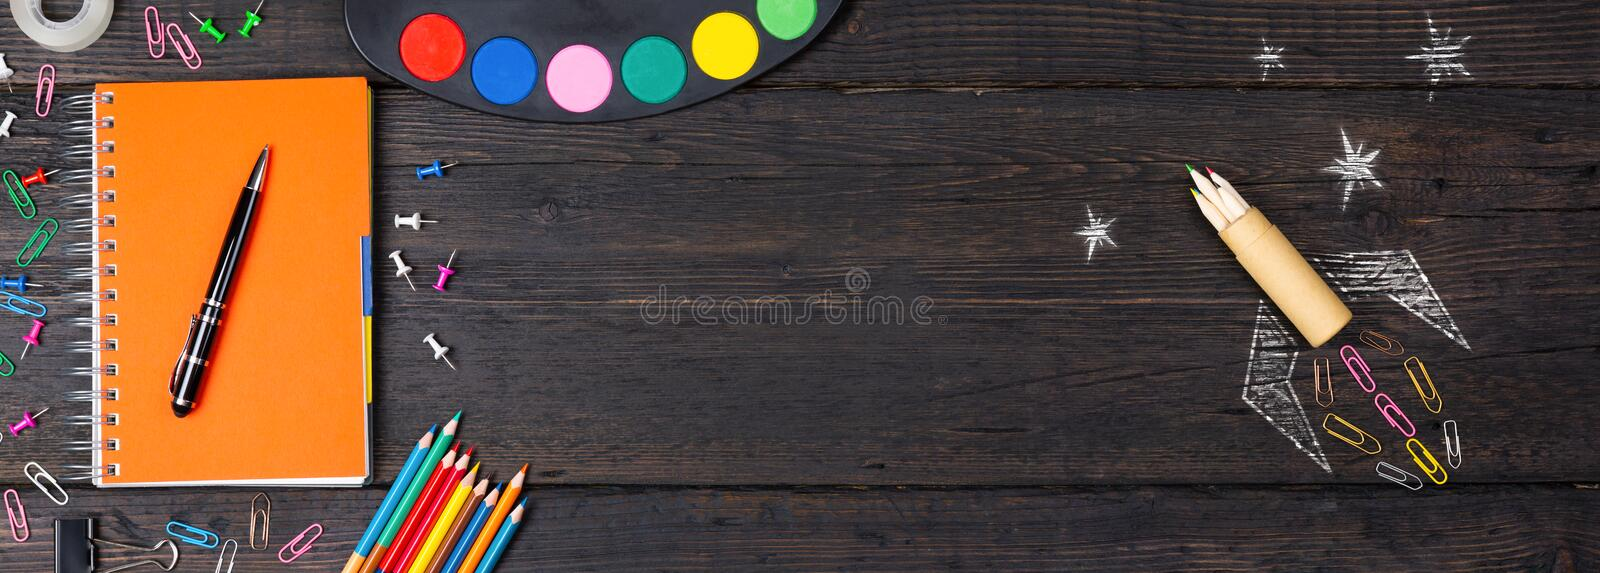 School stationery supplies and hand drawn rocket ship on dark background. Back to school concept. New idea and creativity. Launching  in a natural light stock photography